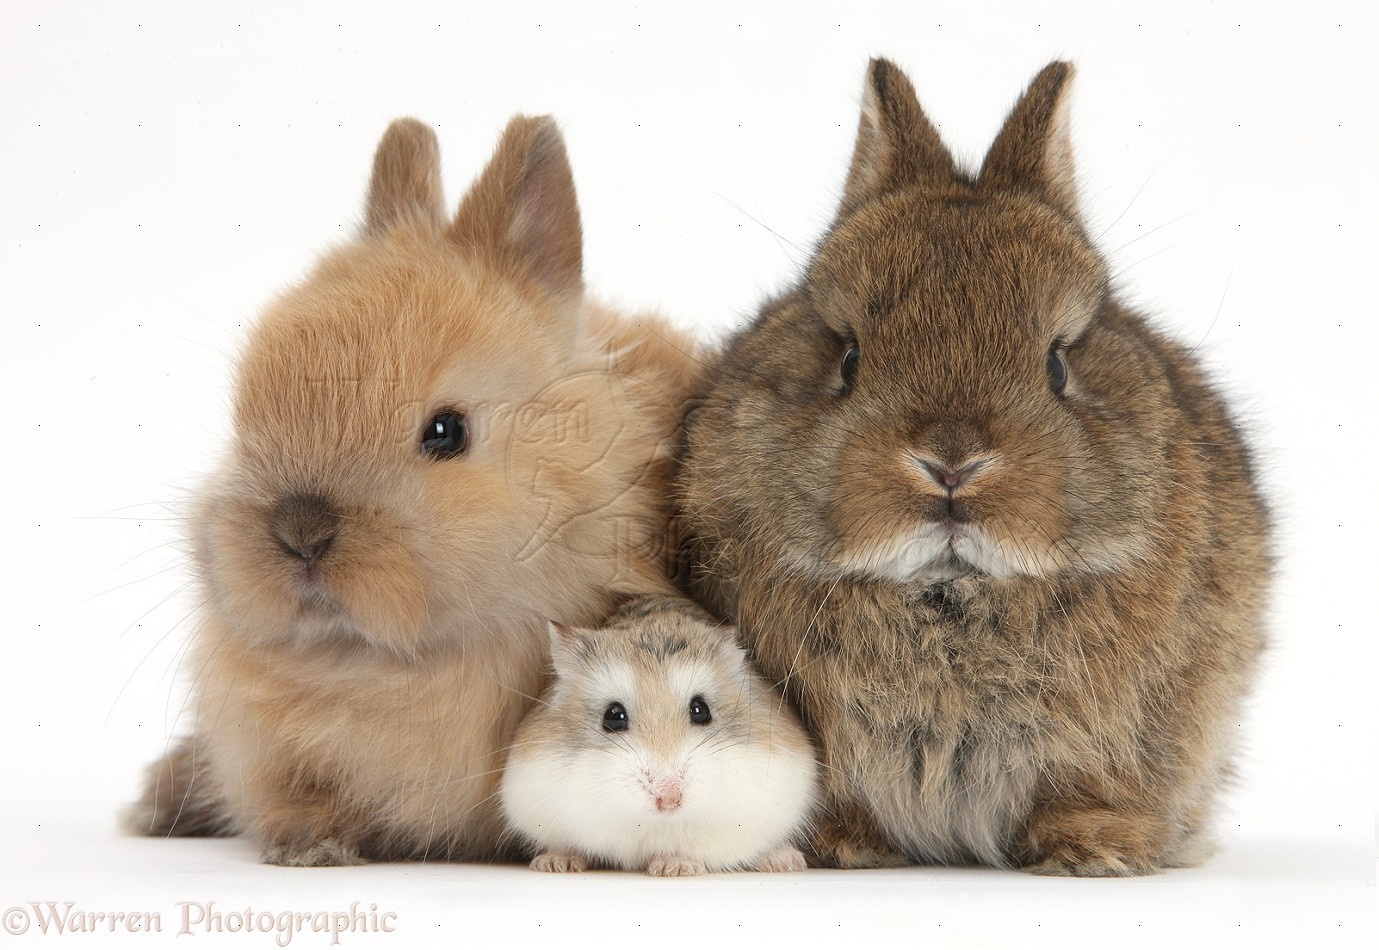 Pictures Of Baby Bunnies And Puppies